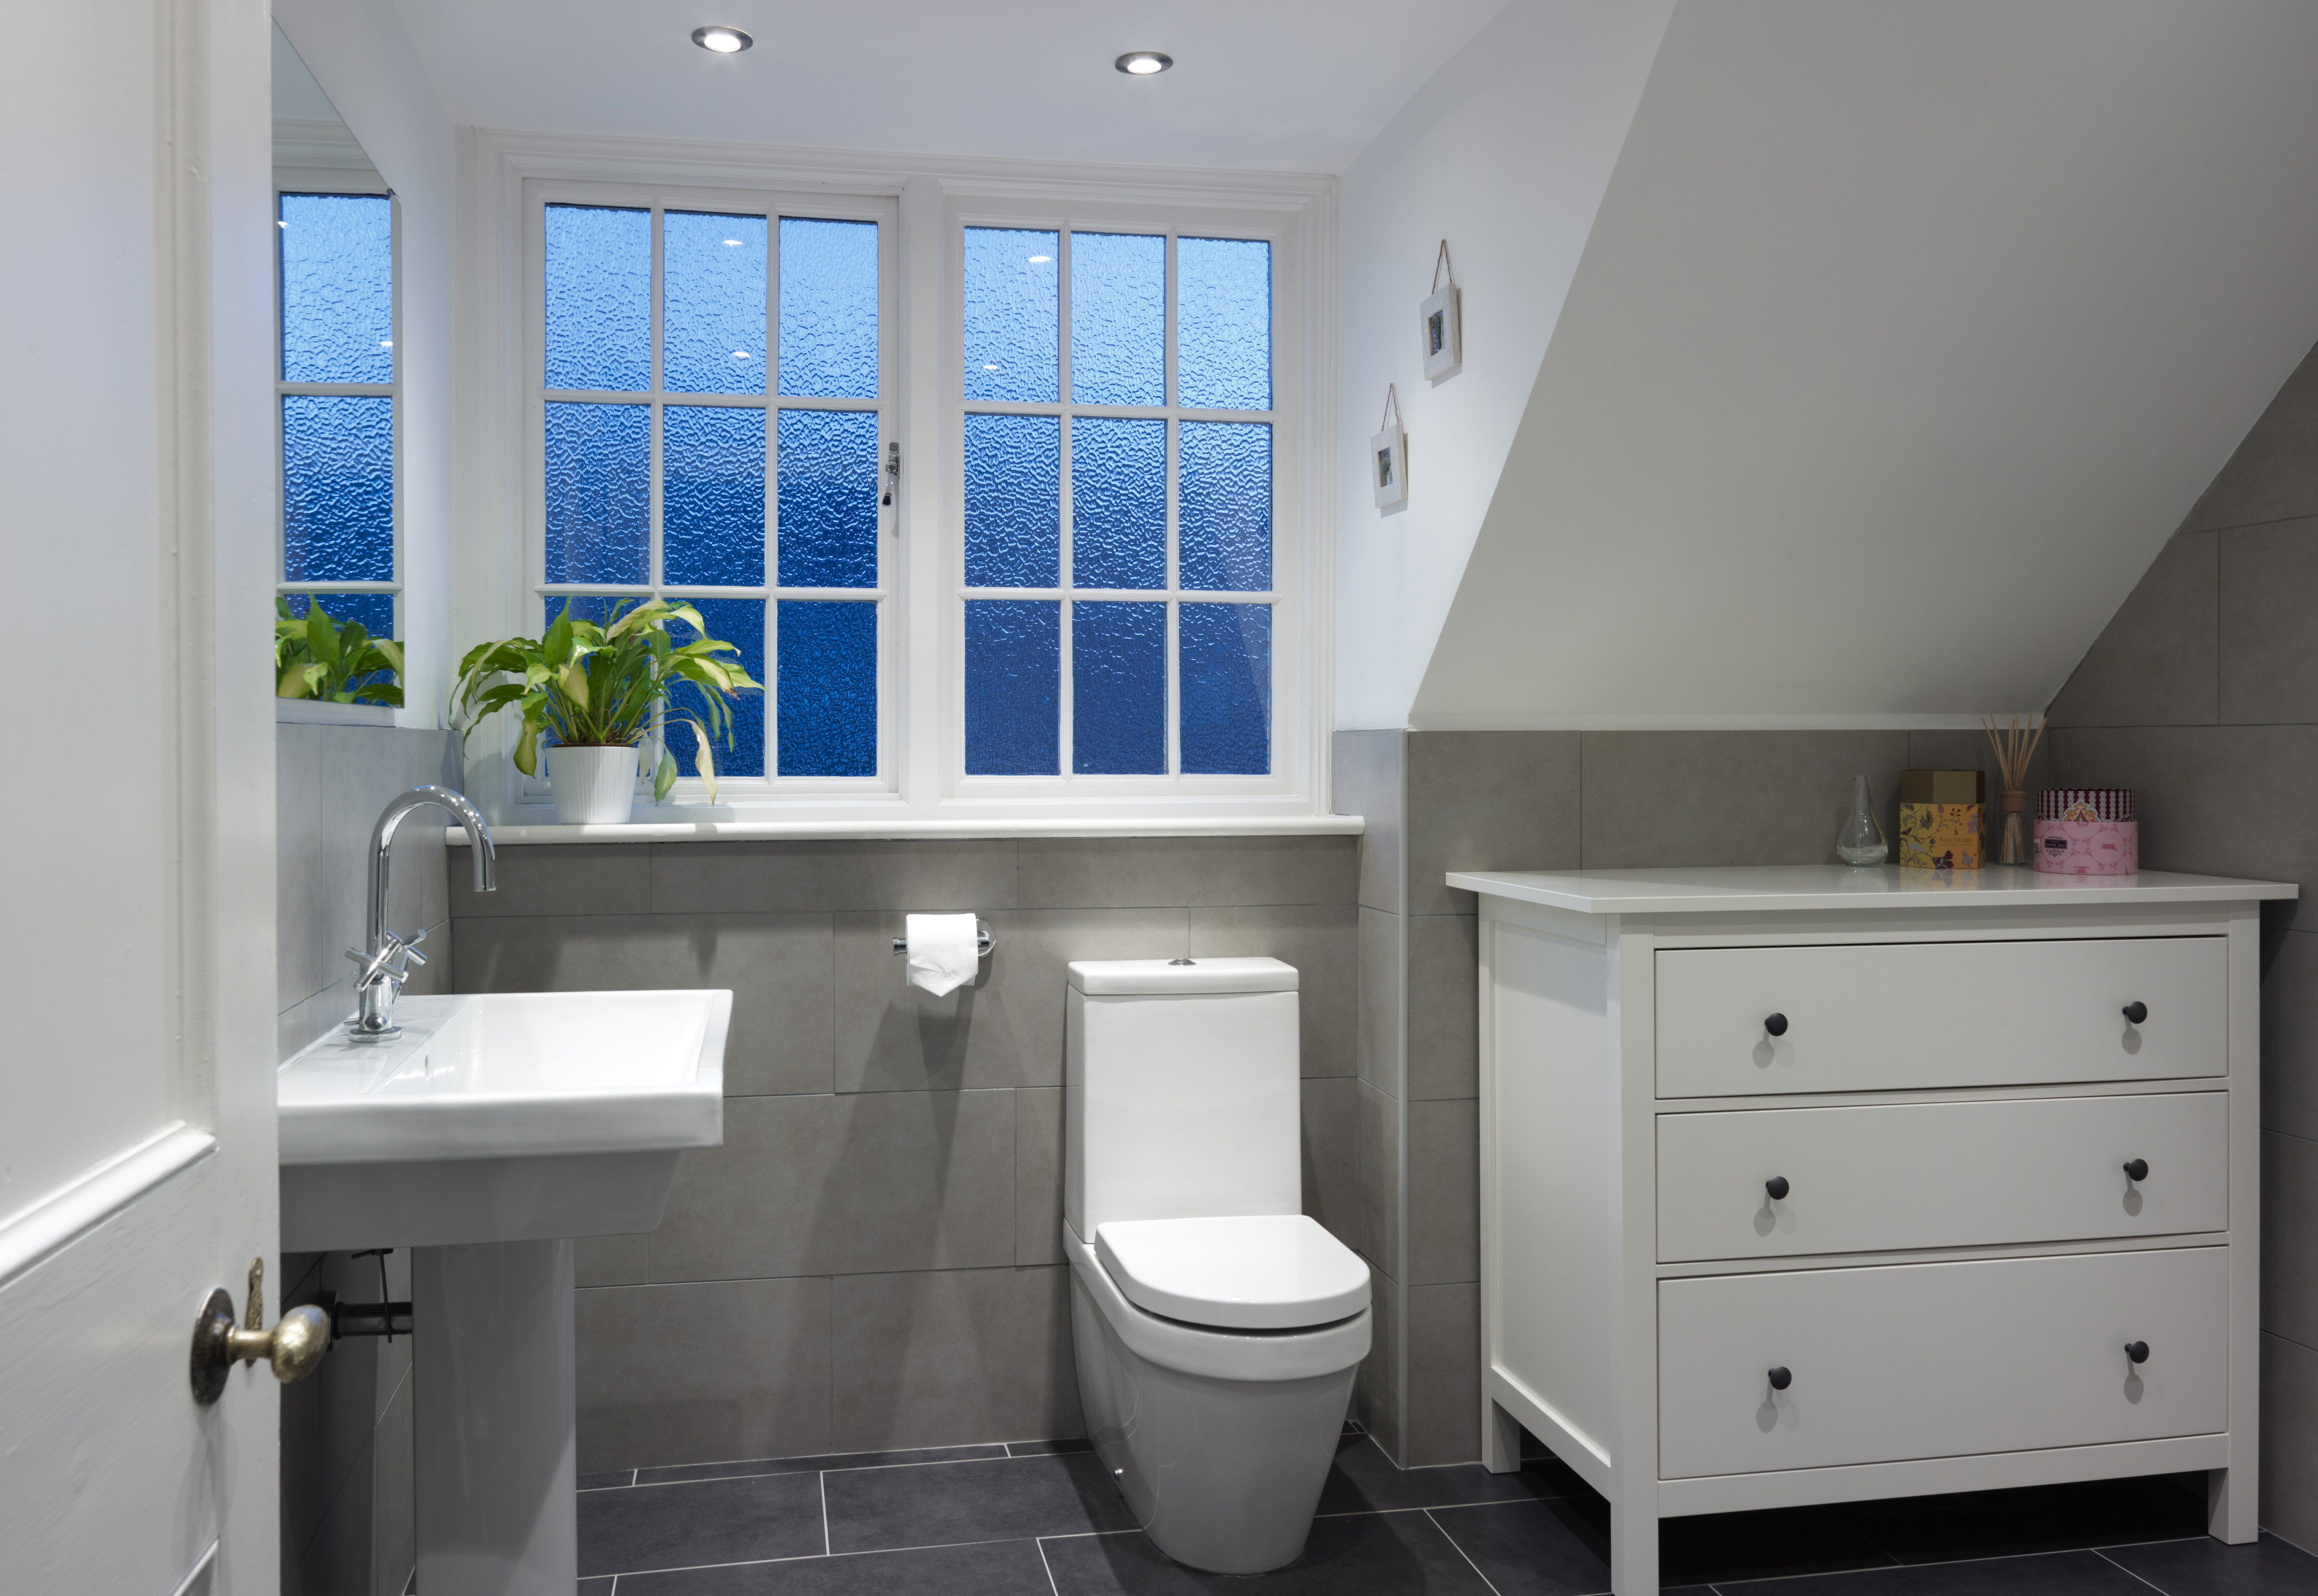 small toilet and sink beneath 9-paned windows of a dormer interior